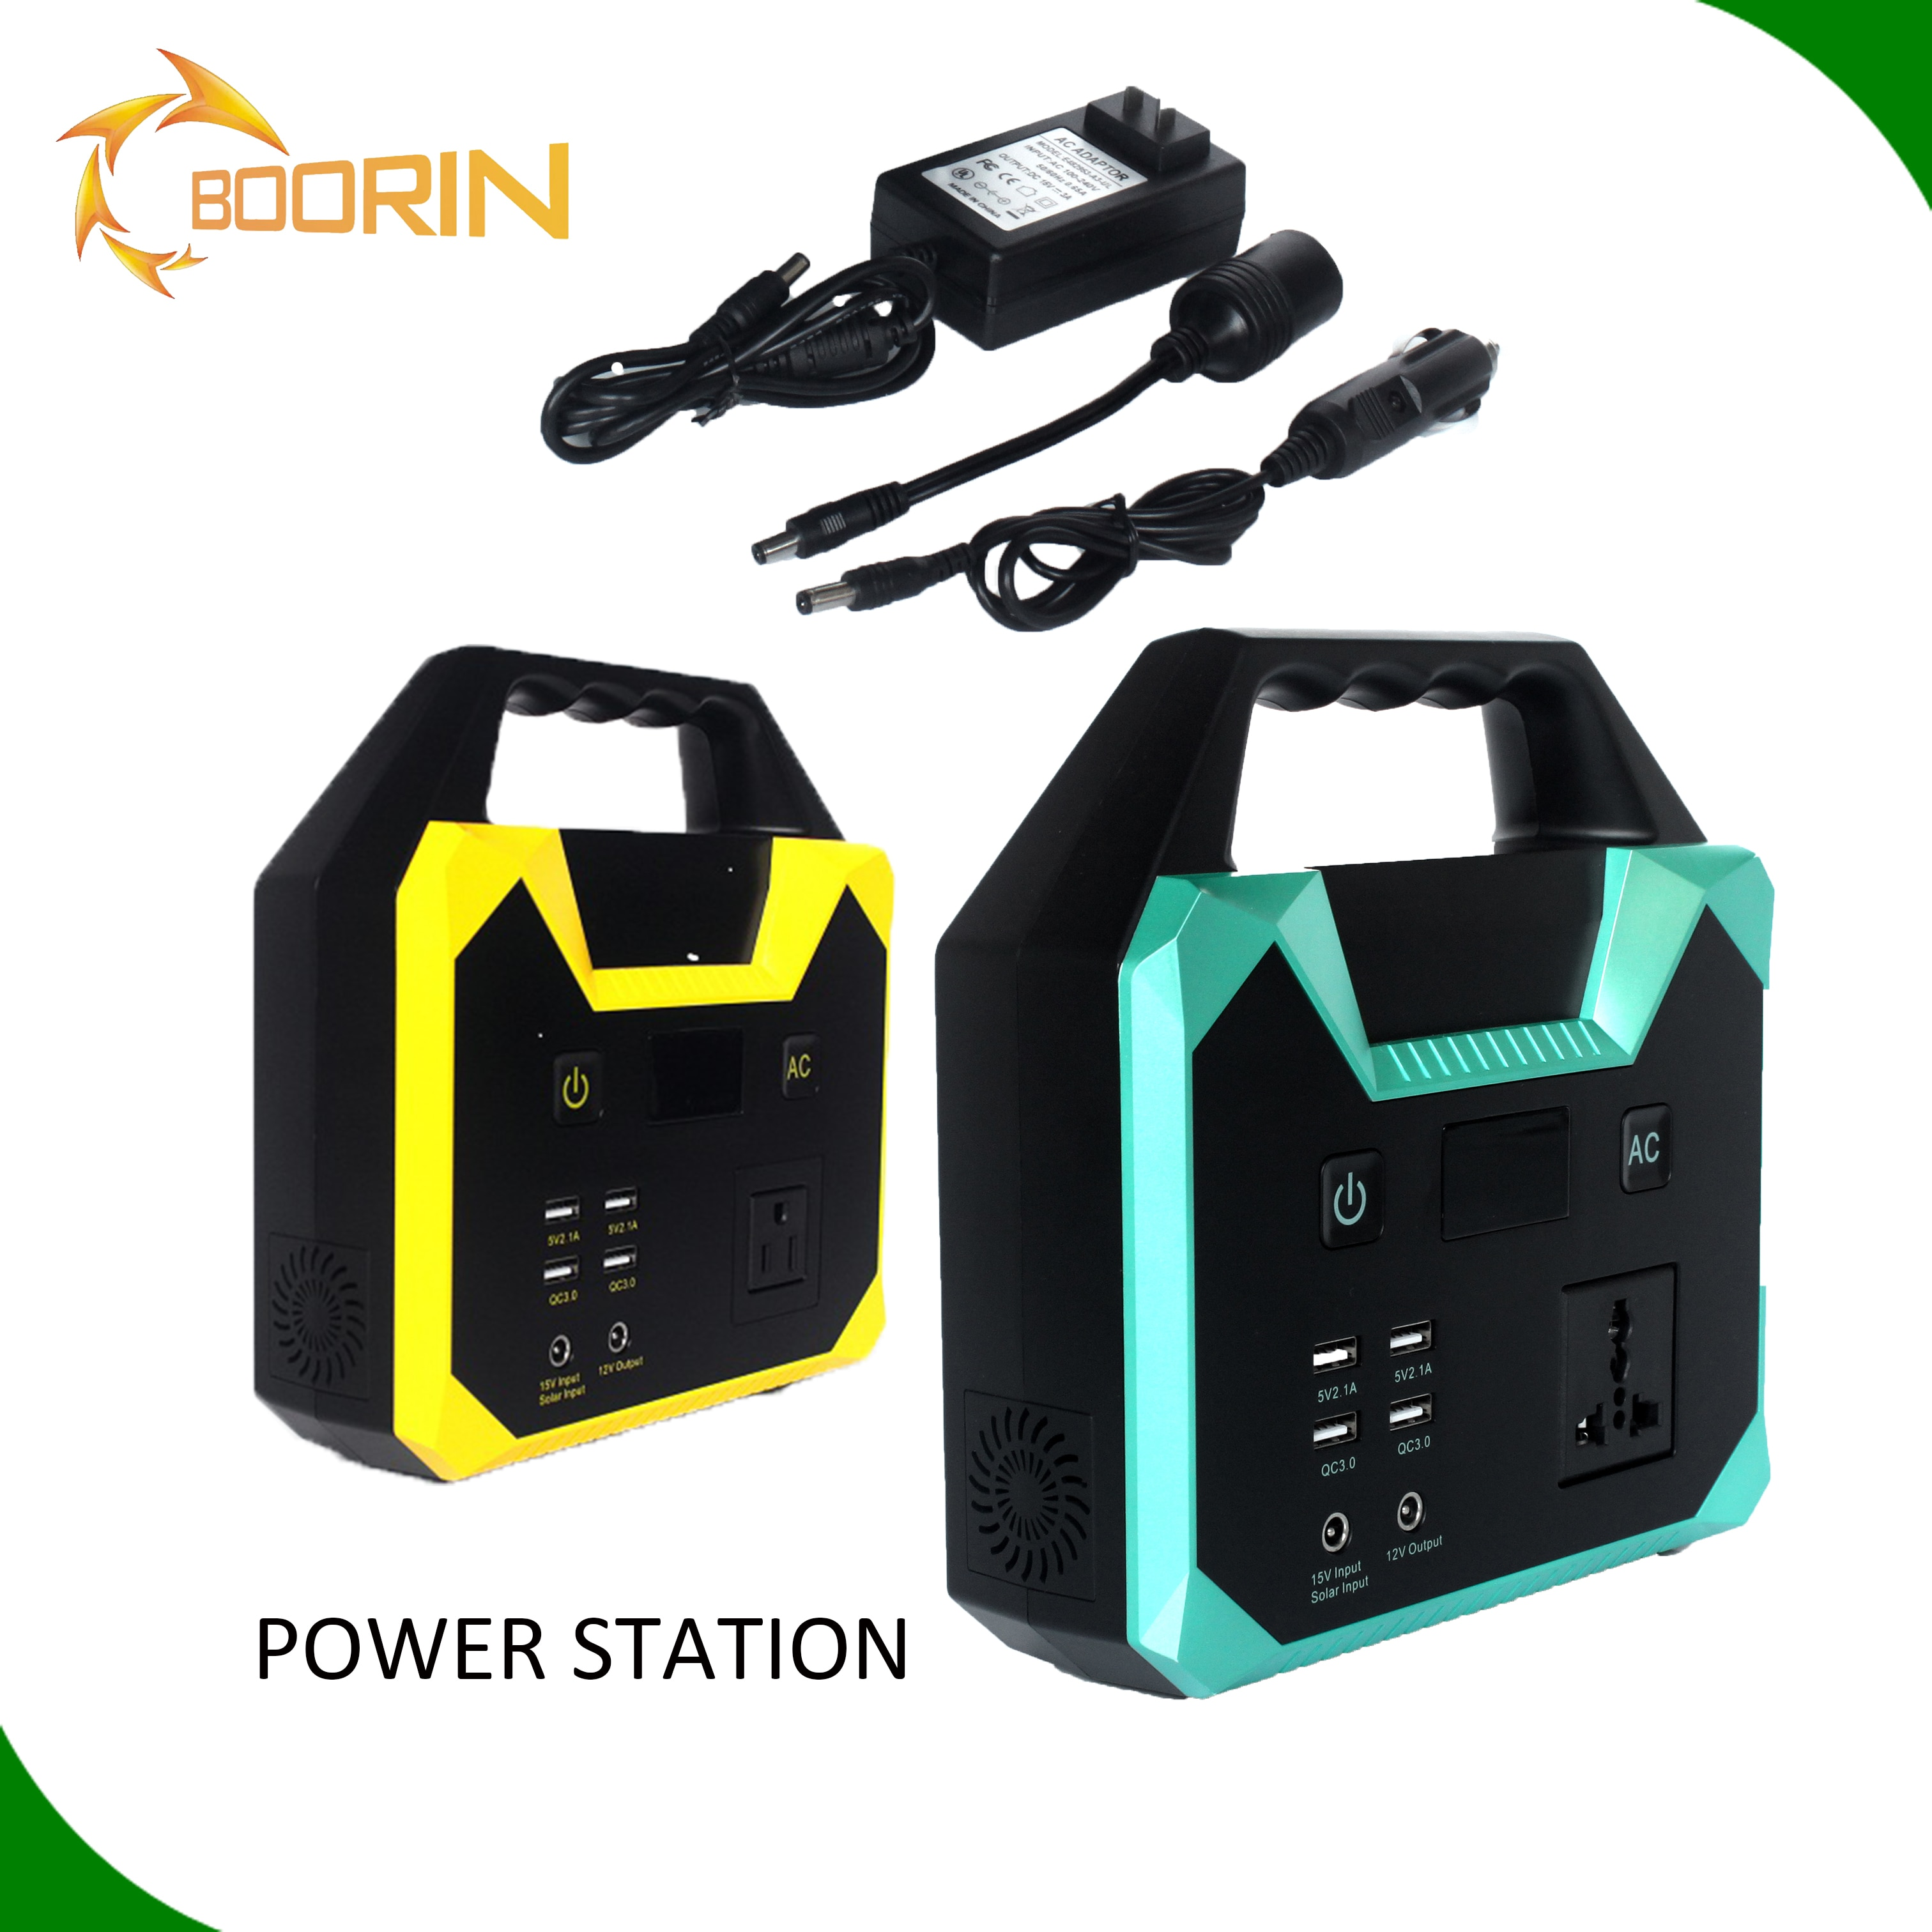 Portable Power pack bank Station Solar Generator 200W Pure Sine Wave Inverter Emergency 220v battery Power Supply Charged by Car enlarge